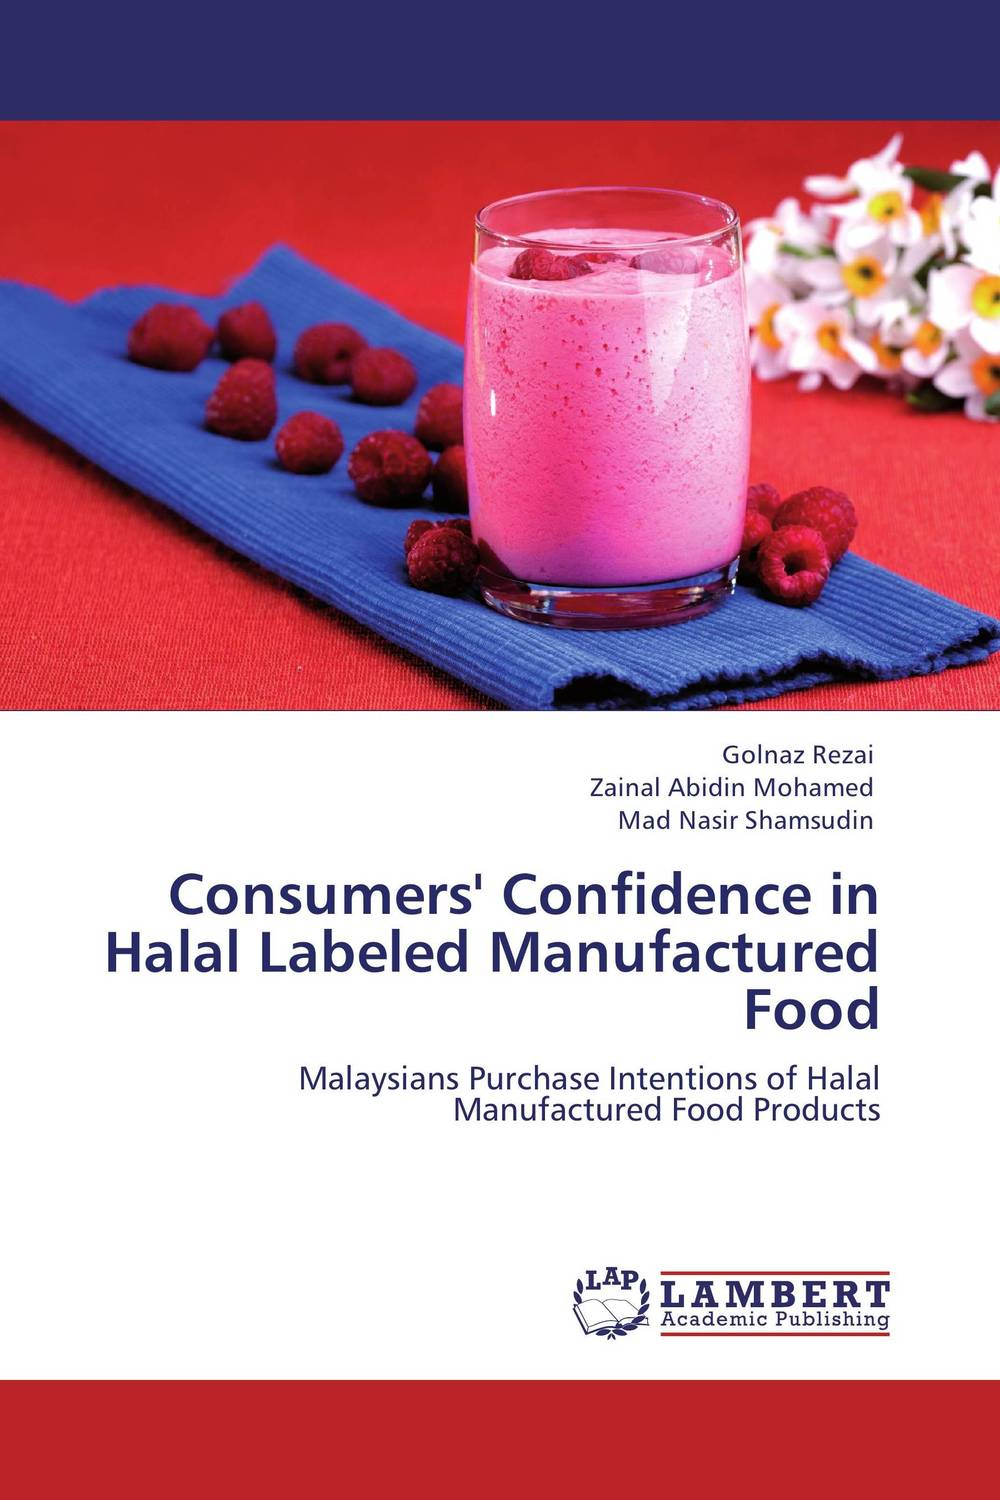 Consumers' Confidence in Halal Labeled Manufactured Food thermo operated water valves can be used in food processing equipments biomass boilers and hydraulic systems